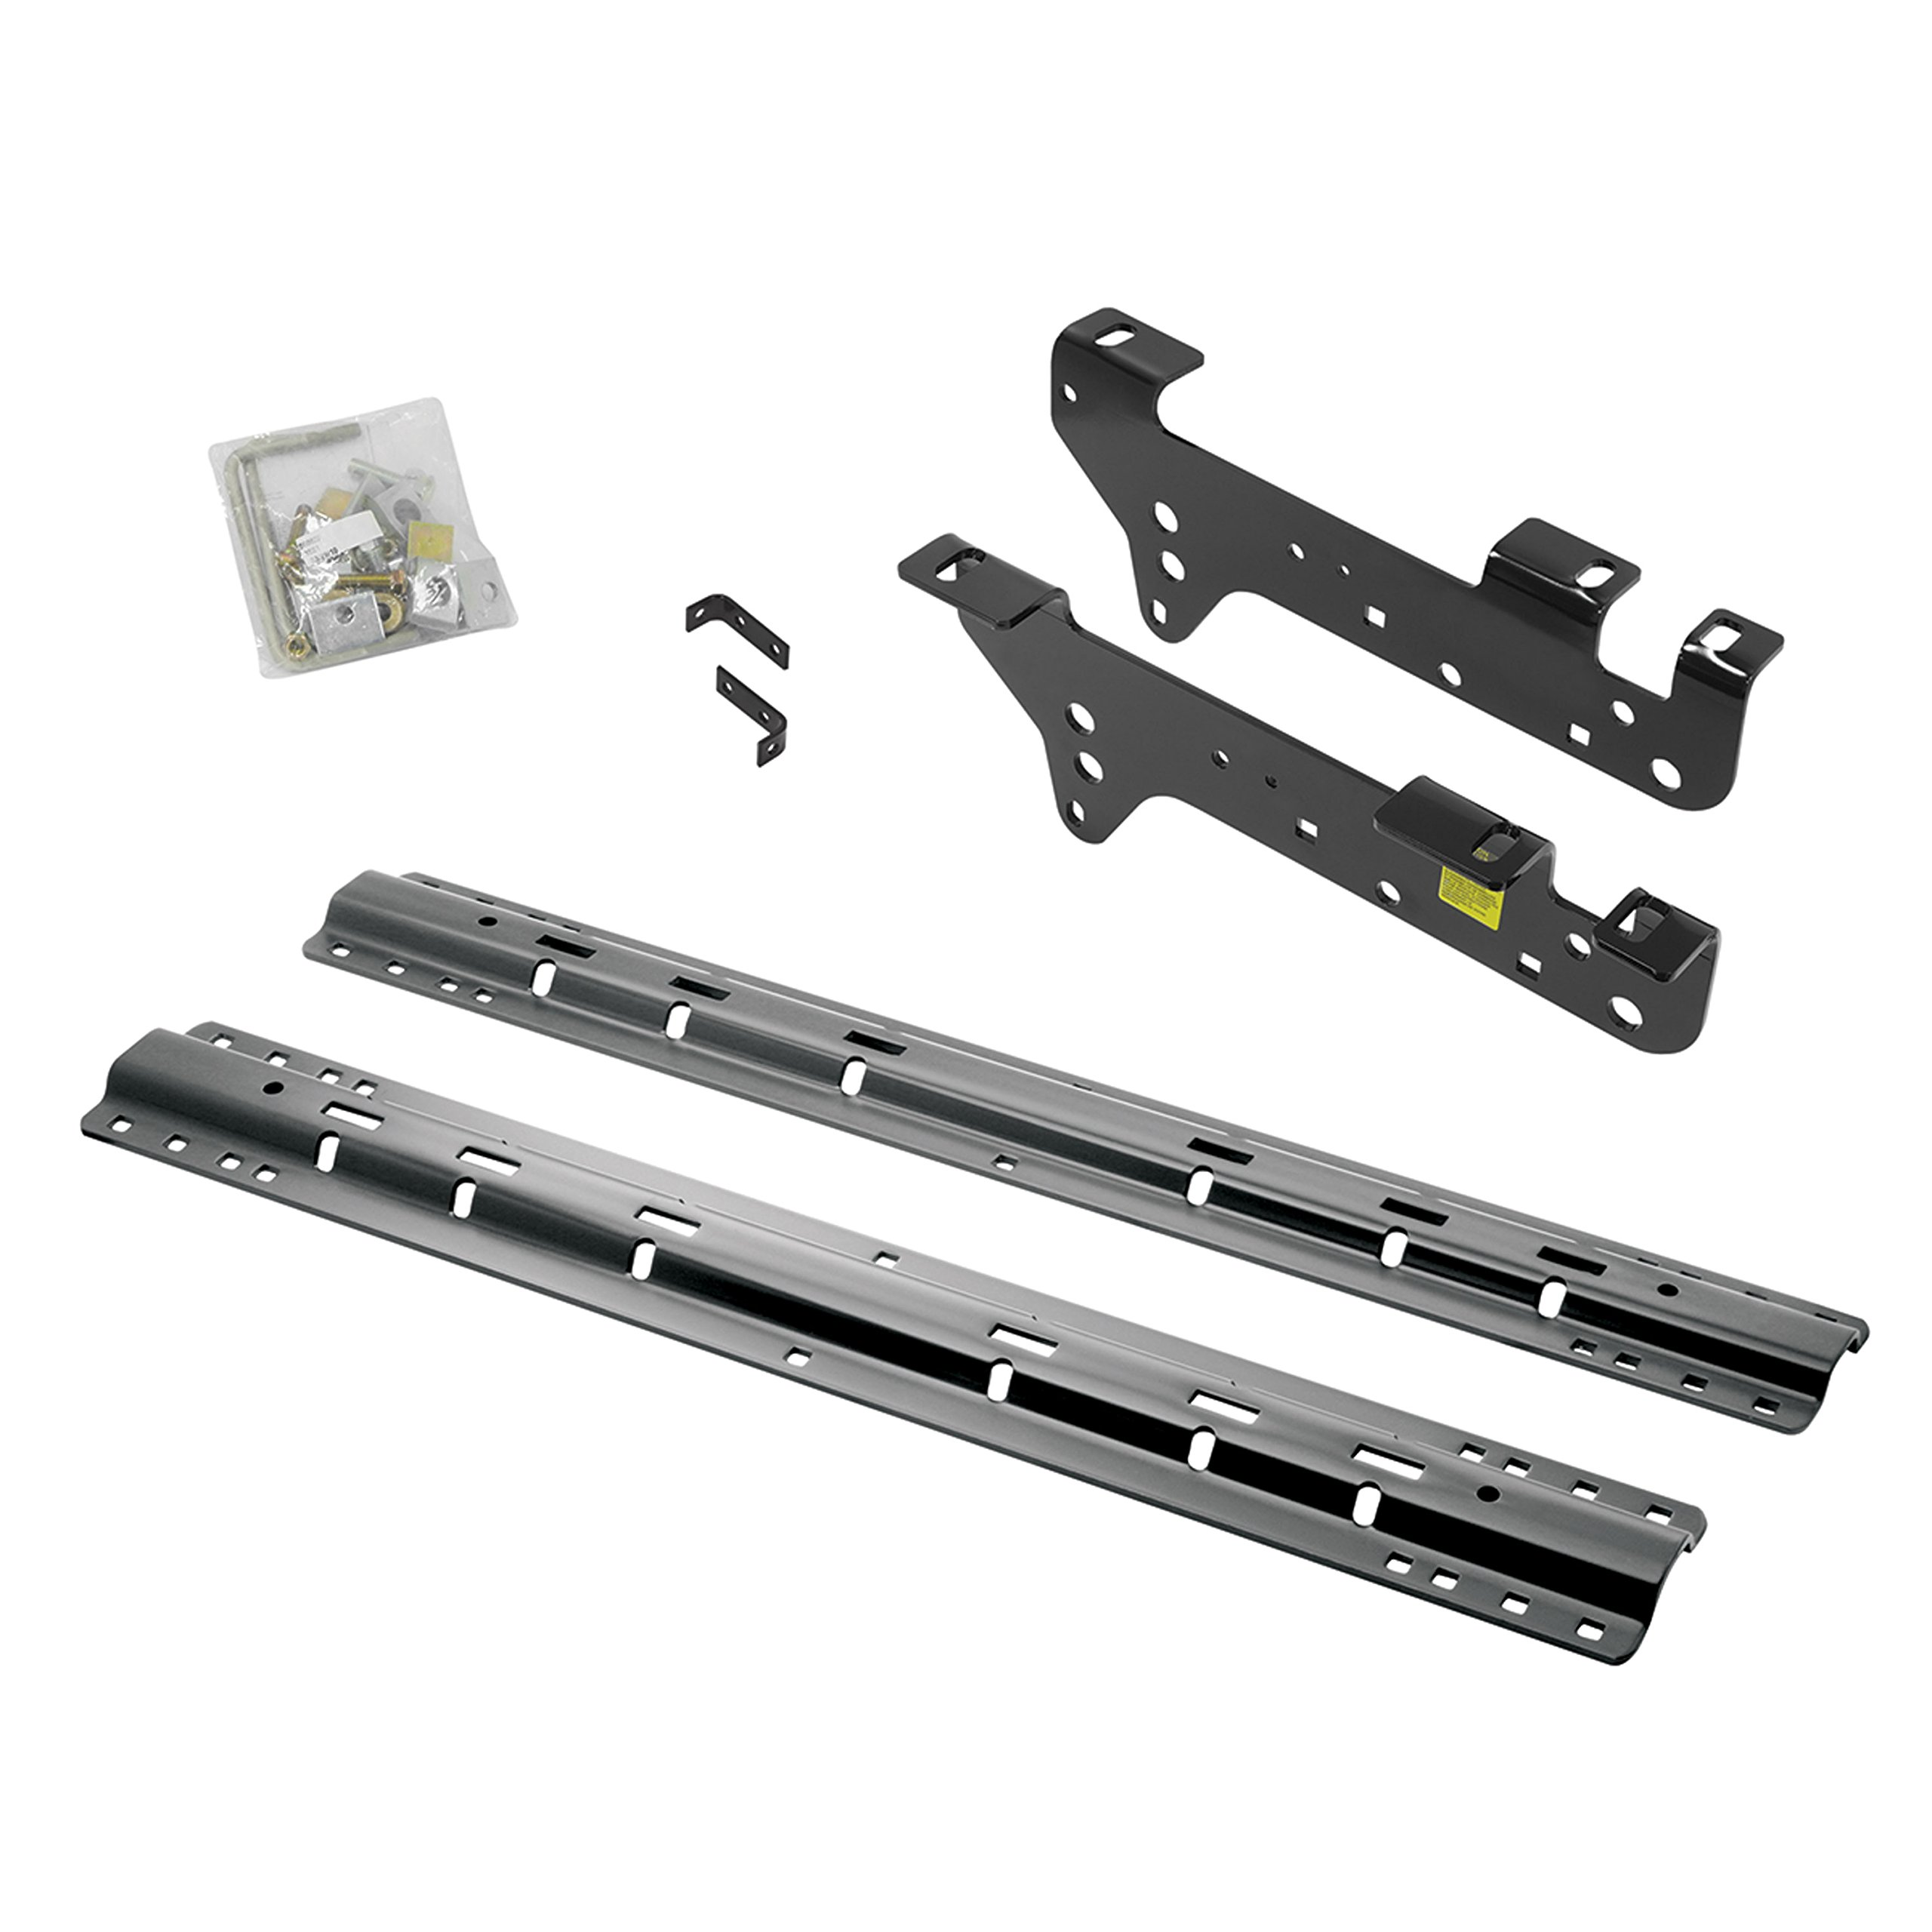 Reese Towpower Reese 50082-58 Fifth Wheel Custom Quick Install Kit - Ford F-250 / F-350 Super Duty '99-'10 by Reese Towpower